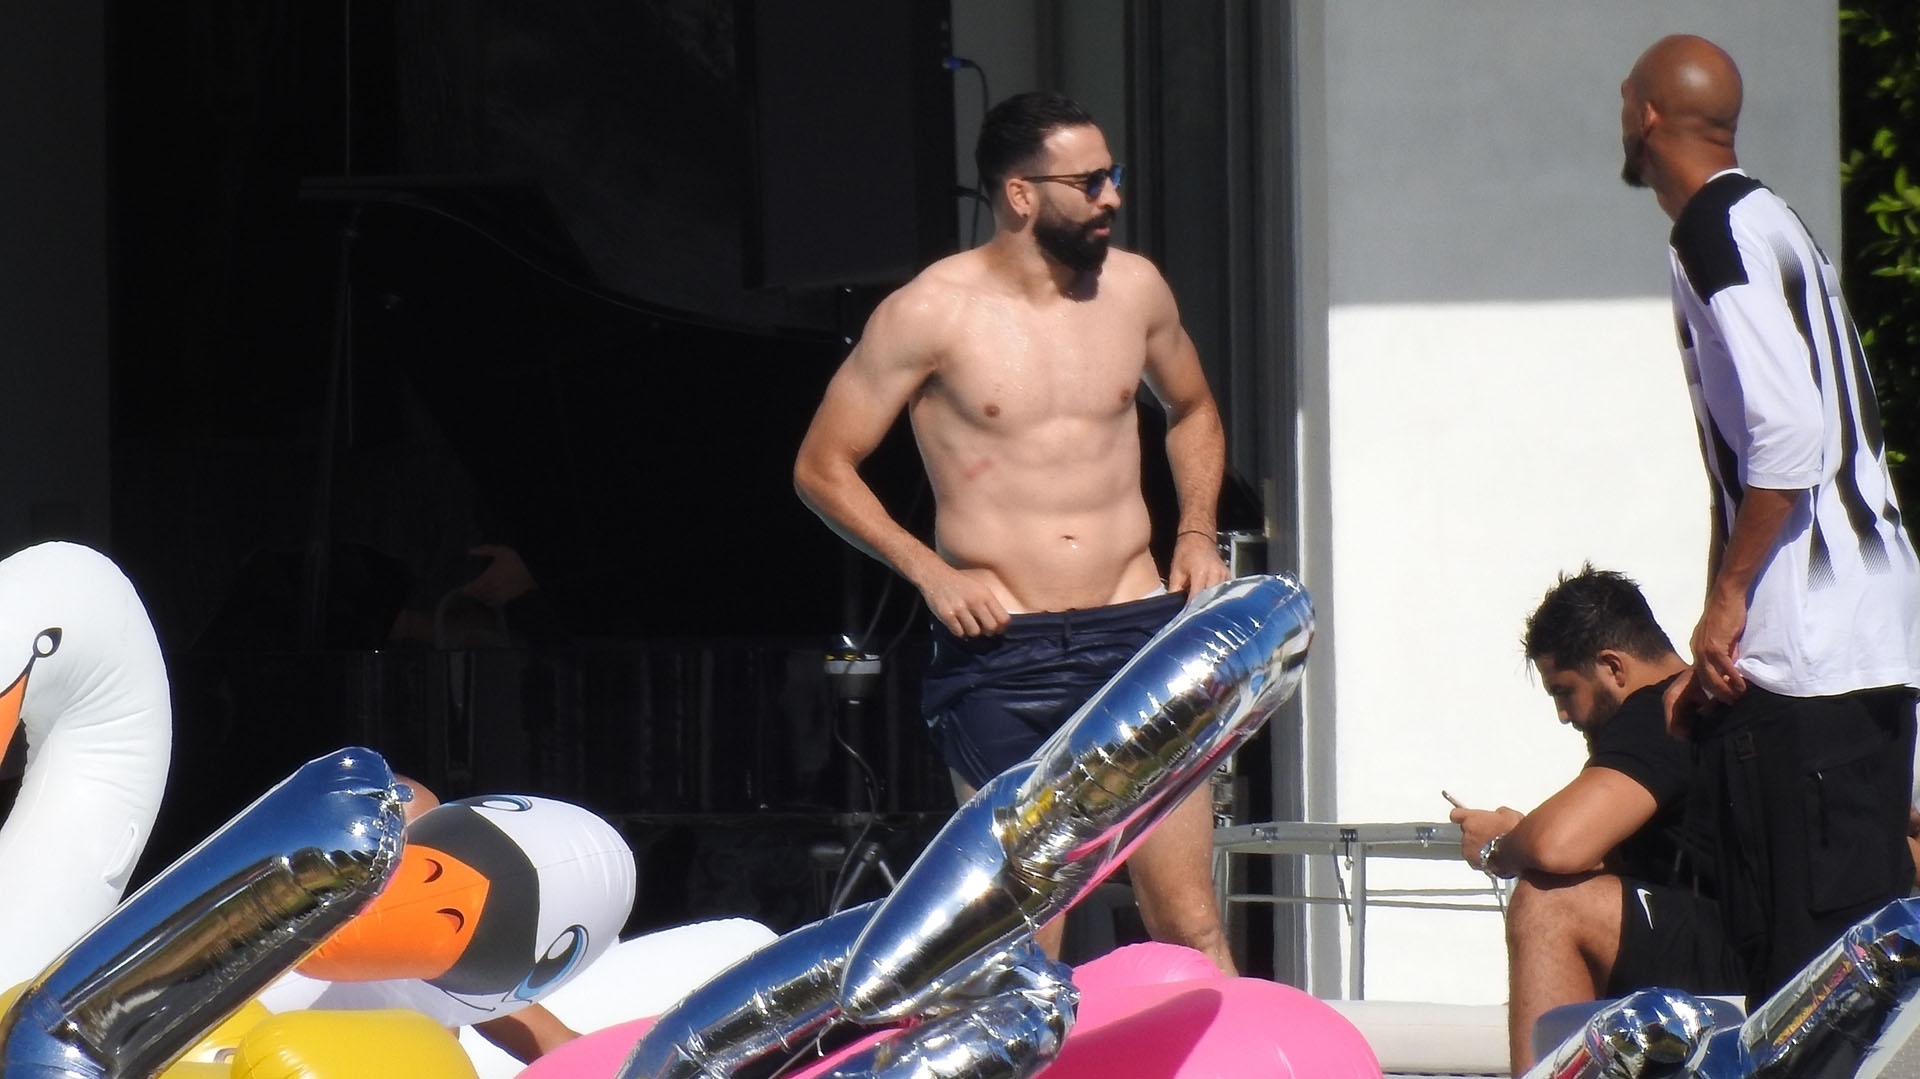 Adil Rami semidesnudo en la piscina (Photo © 2018 Backgrid/The Grosby Group)